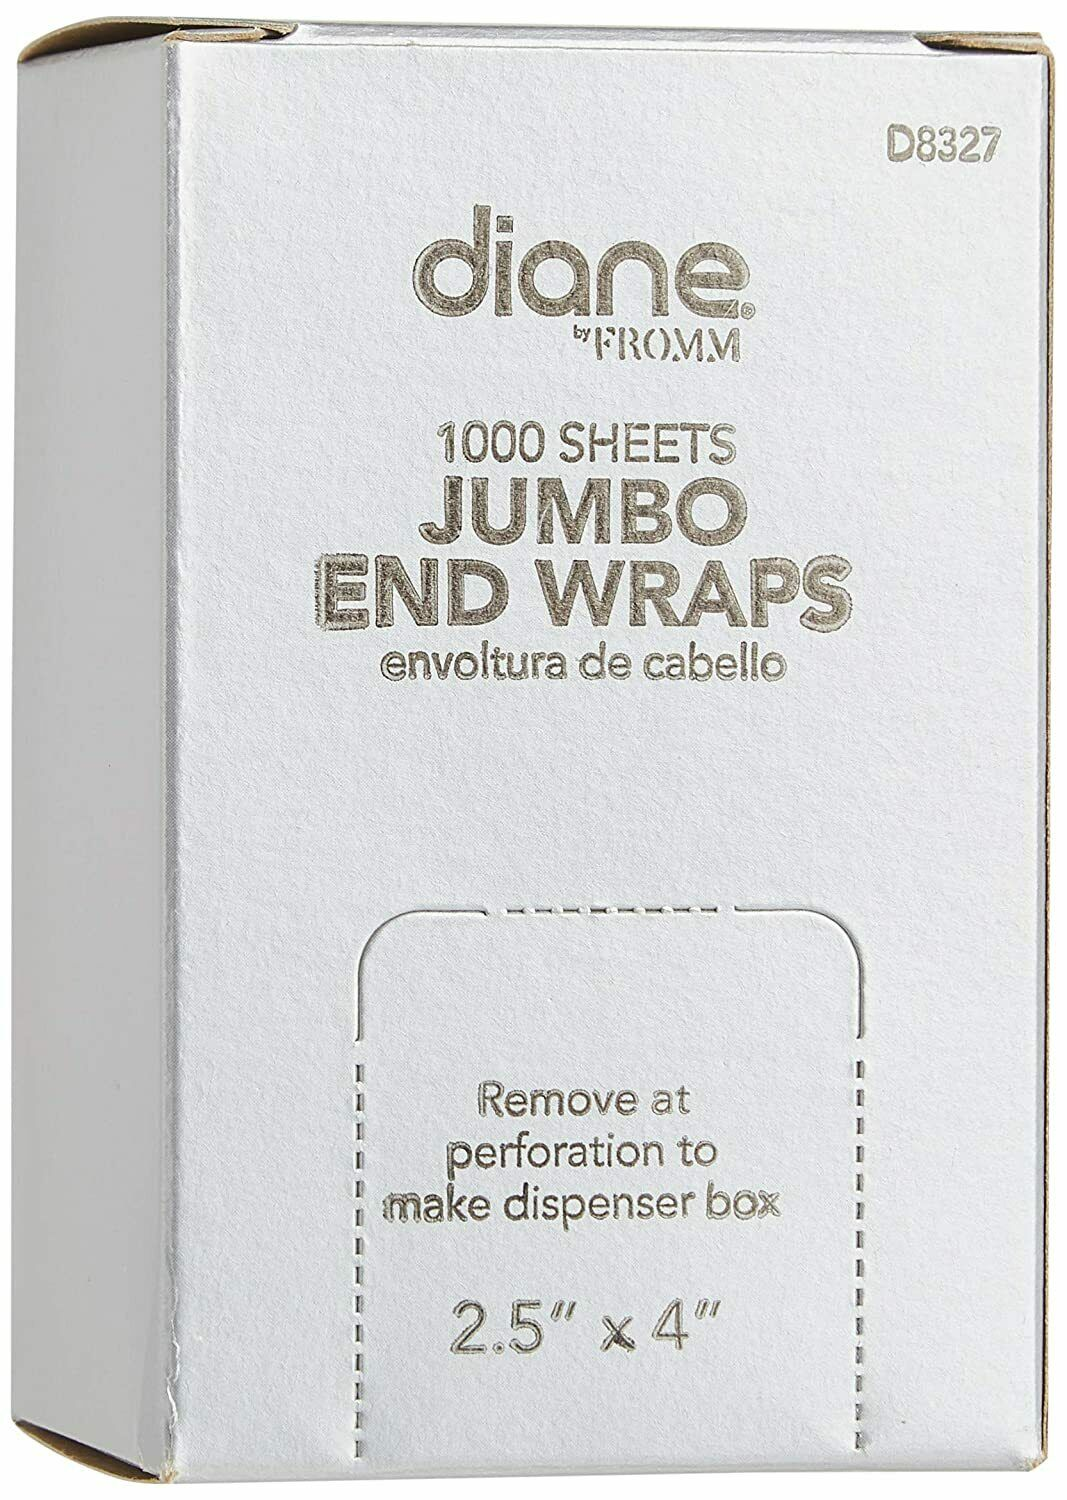 Diane Jumbo End Wraps - Salon Store